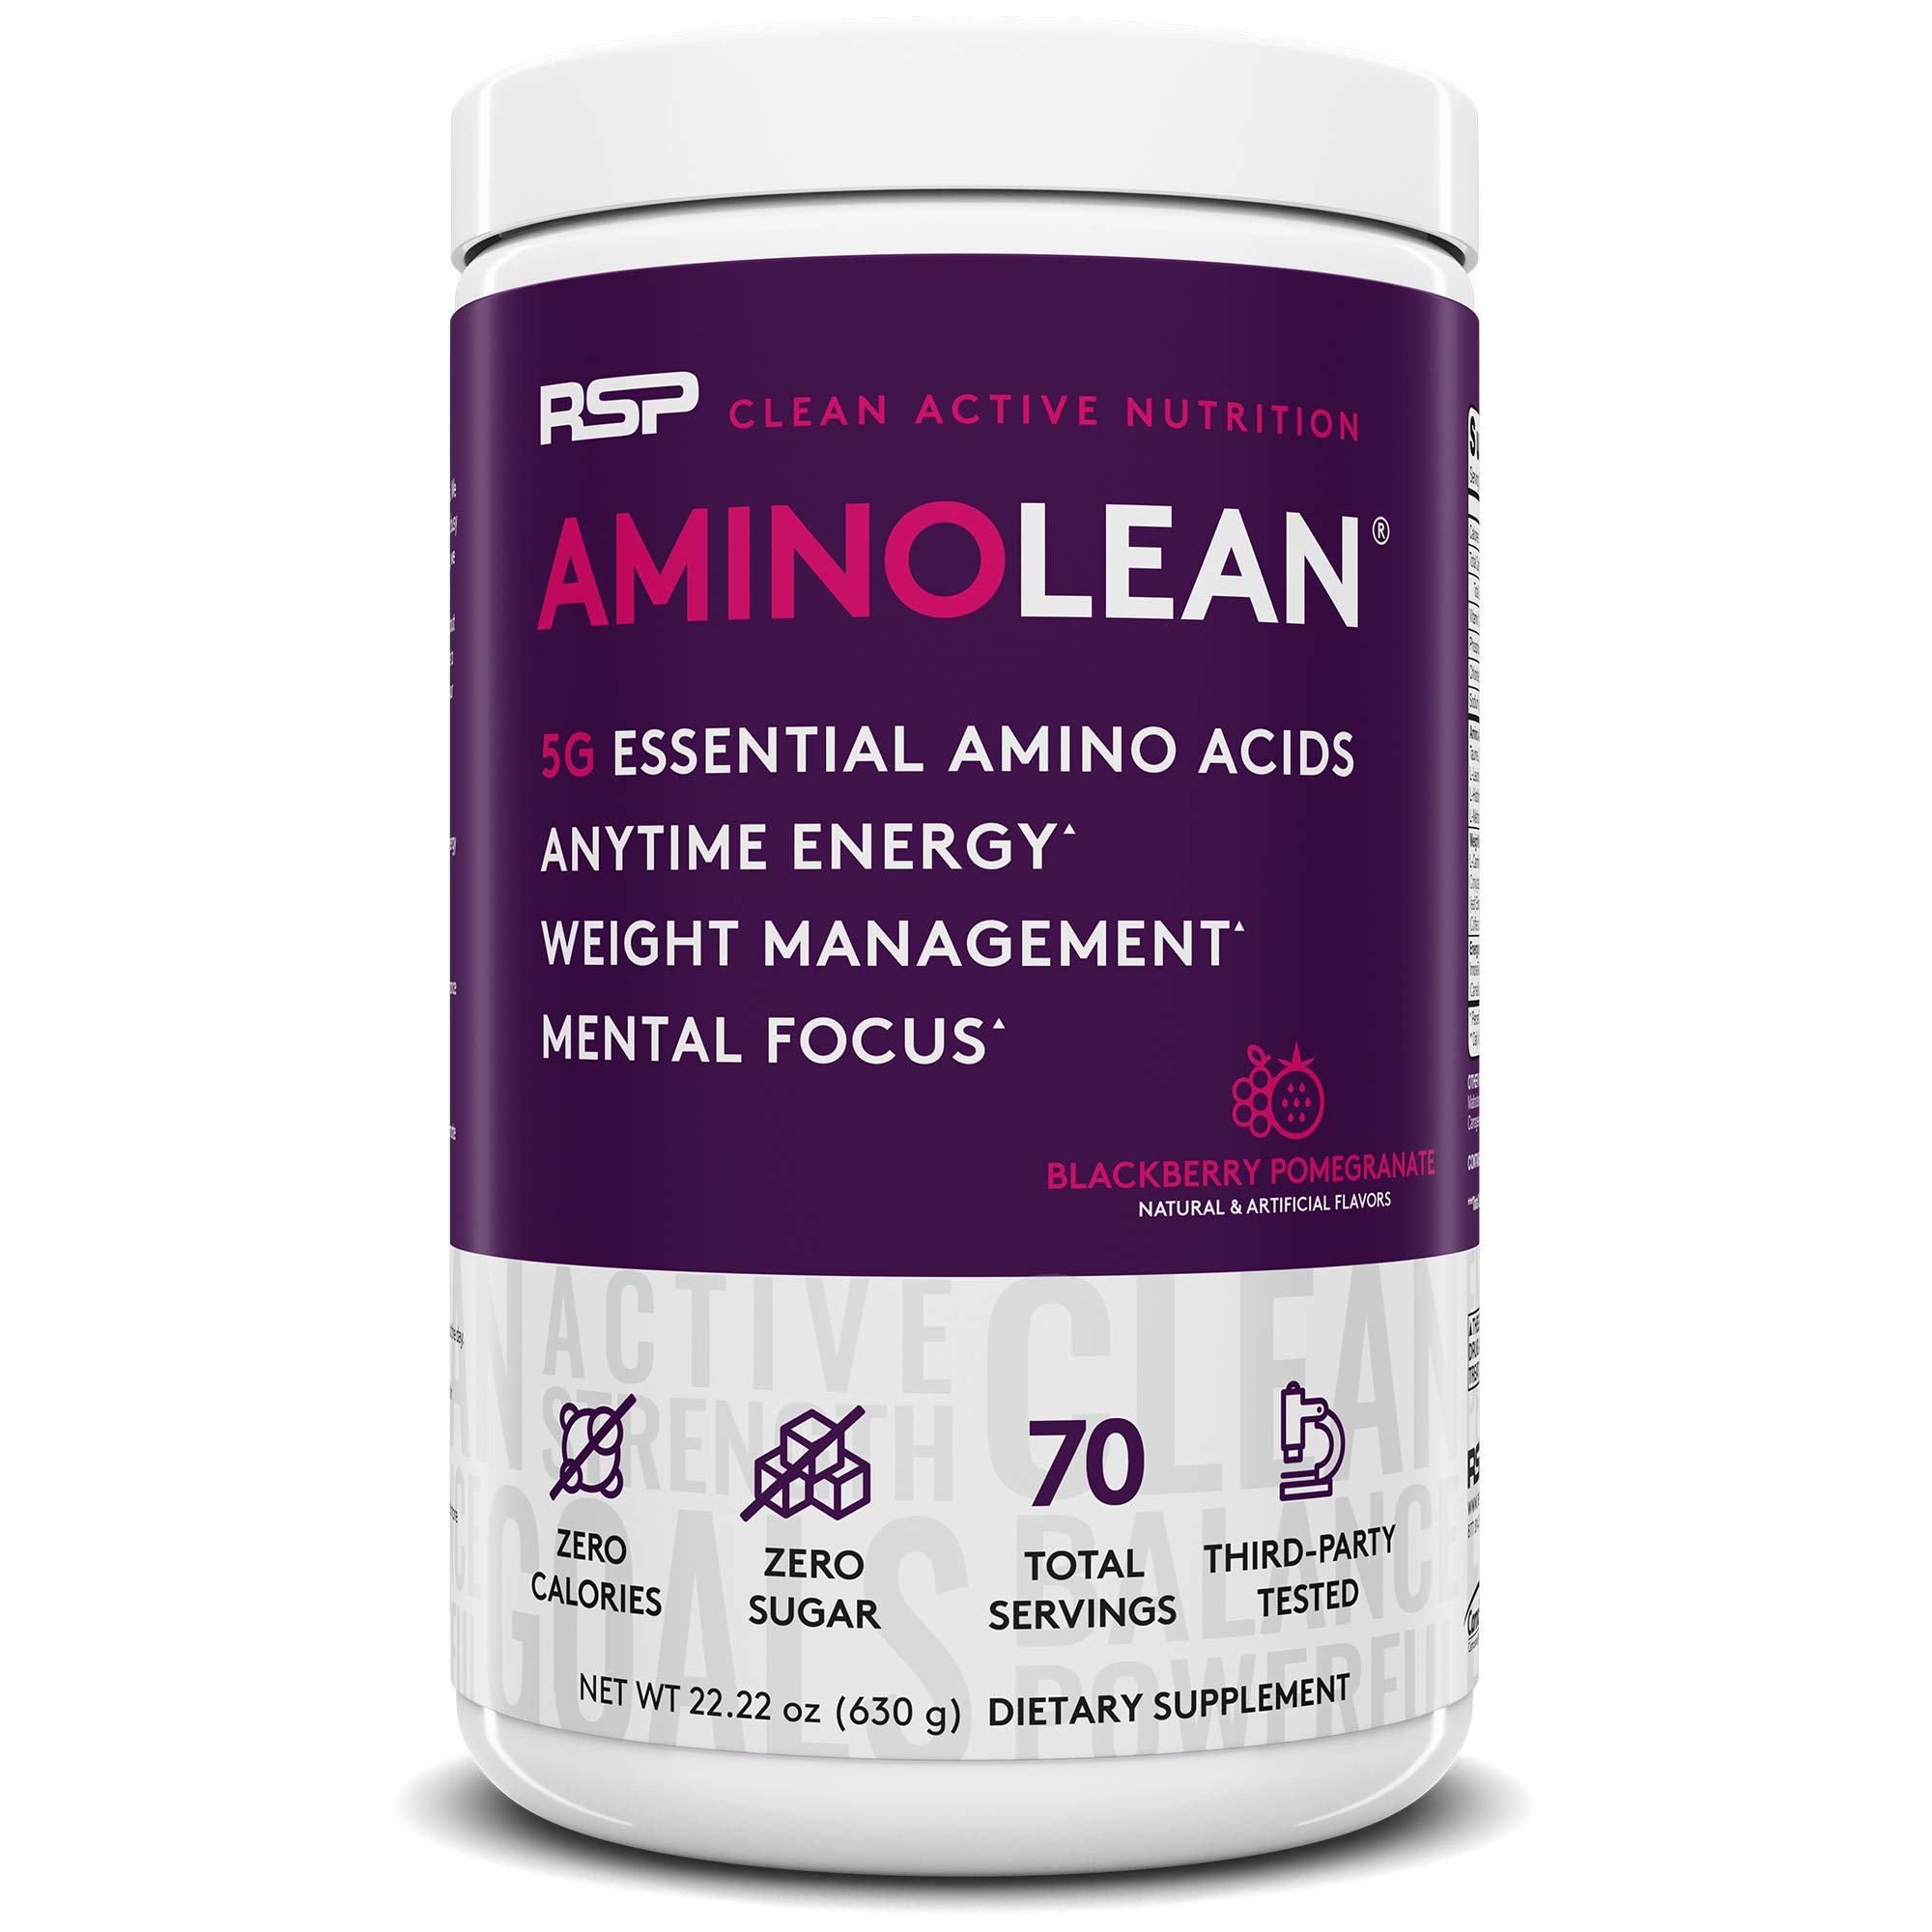 RSP AminoLean - All-in-One Pre Workout, Amino Energy, Weight Management Supplement with Amino Acids, Complete Preworkout Energy for Men & Women, Blackberry Pom, 70 (Packaging May Vary) by RSP Nutrition